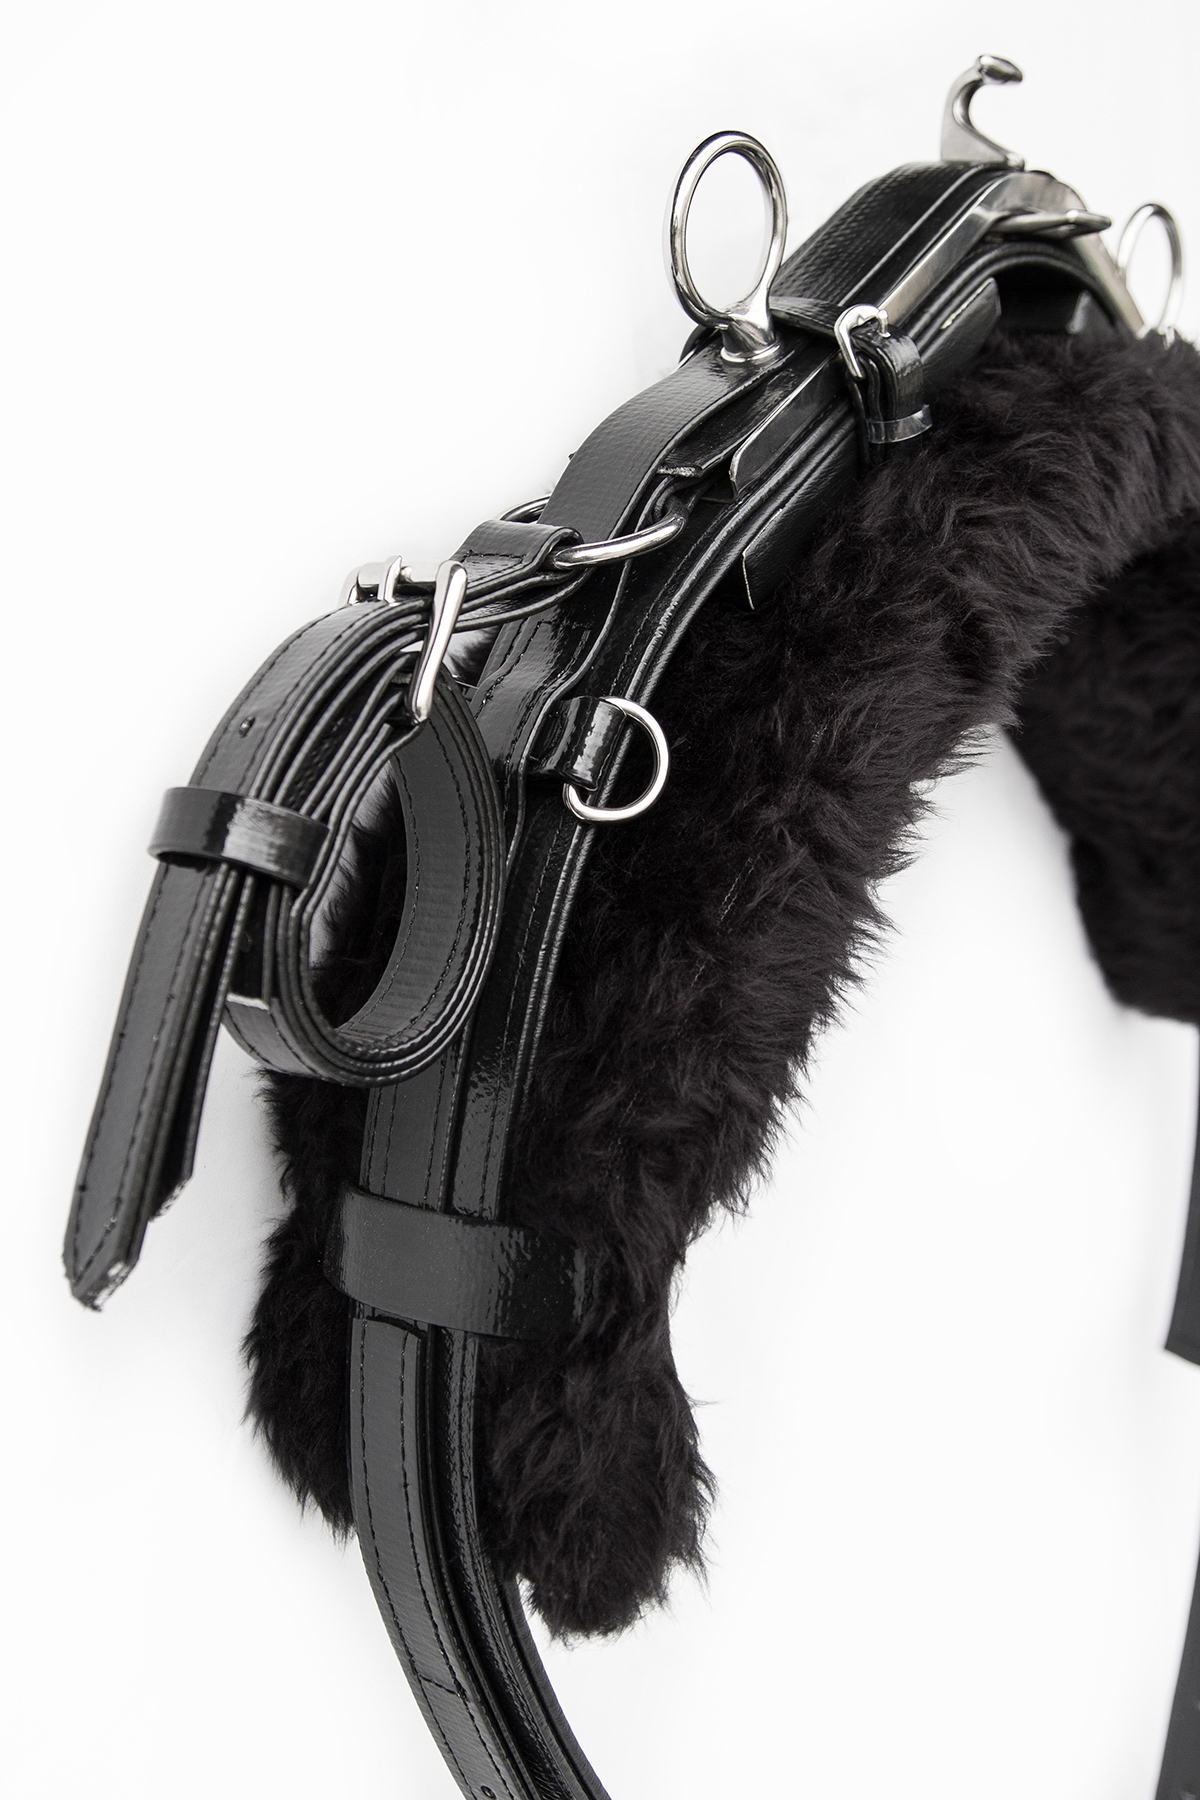 Harness-TieDown-Black-2.jpg